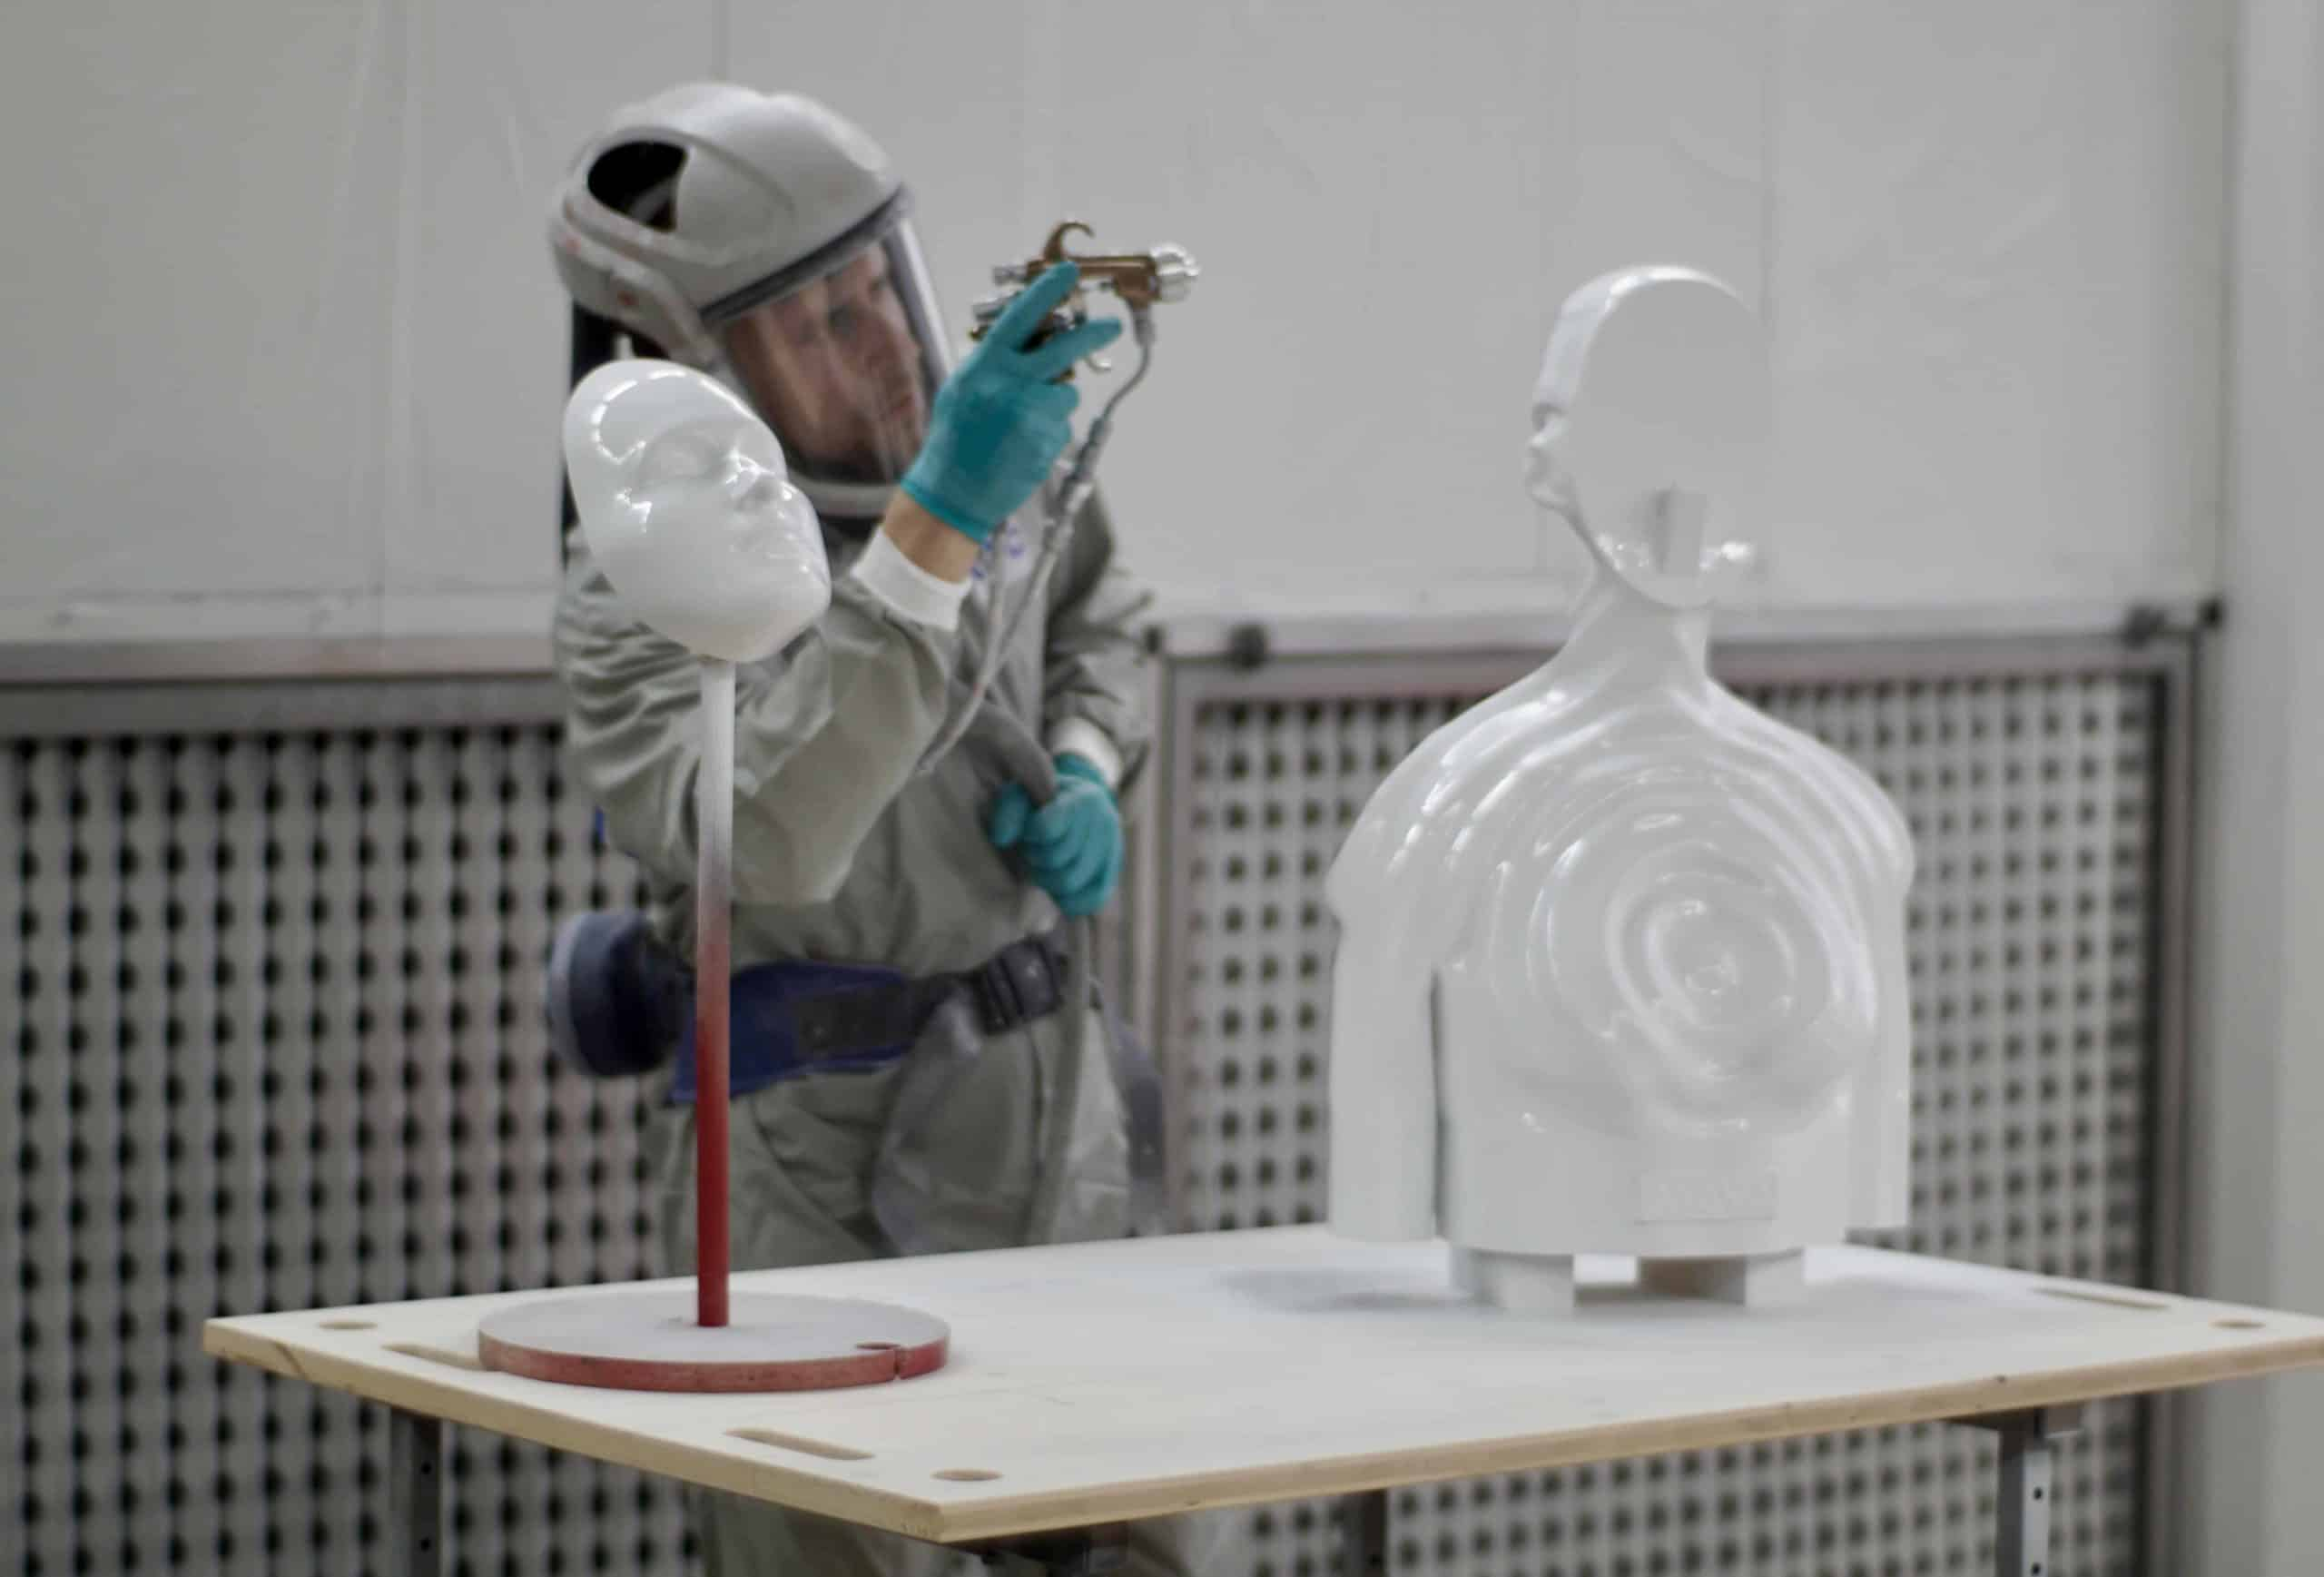 spray-coating-3d-printed-statue-post-processing2